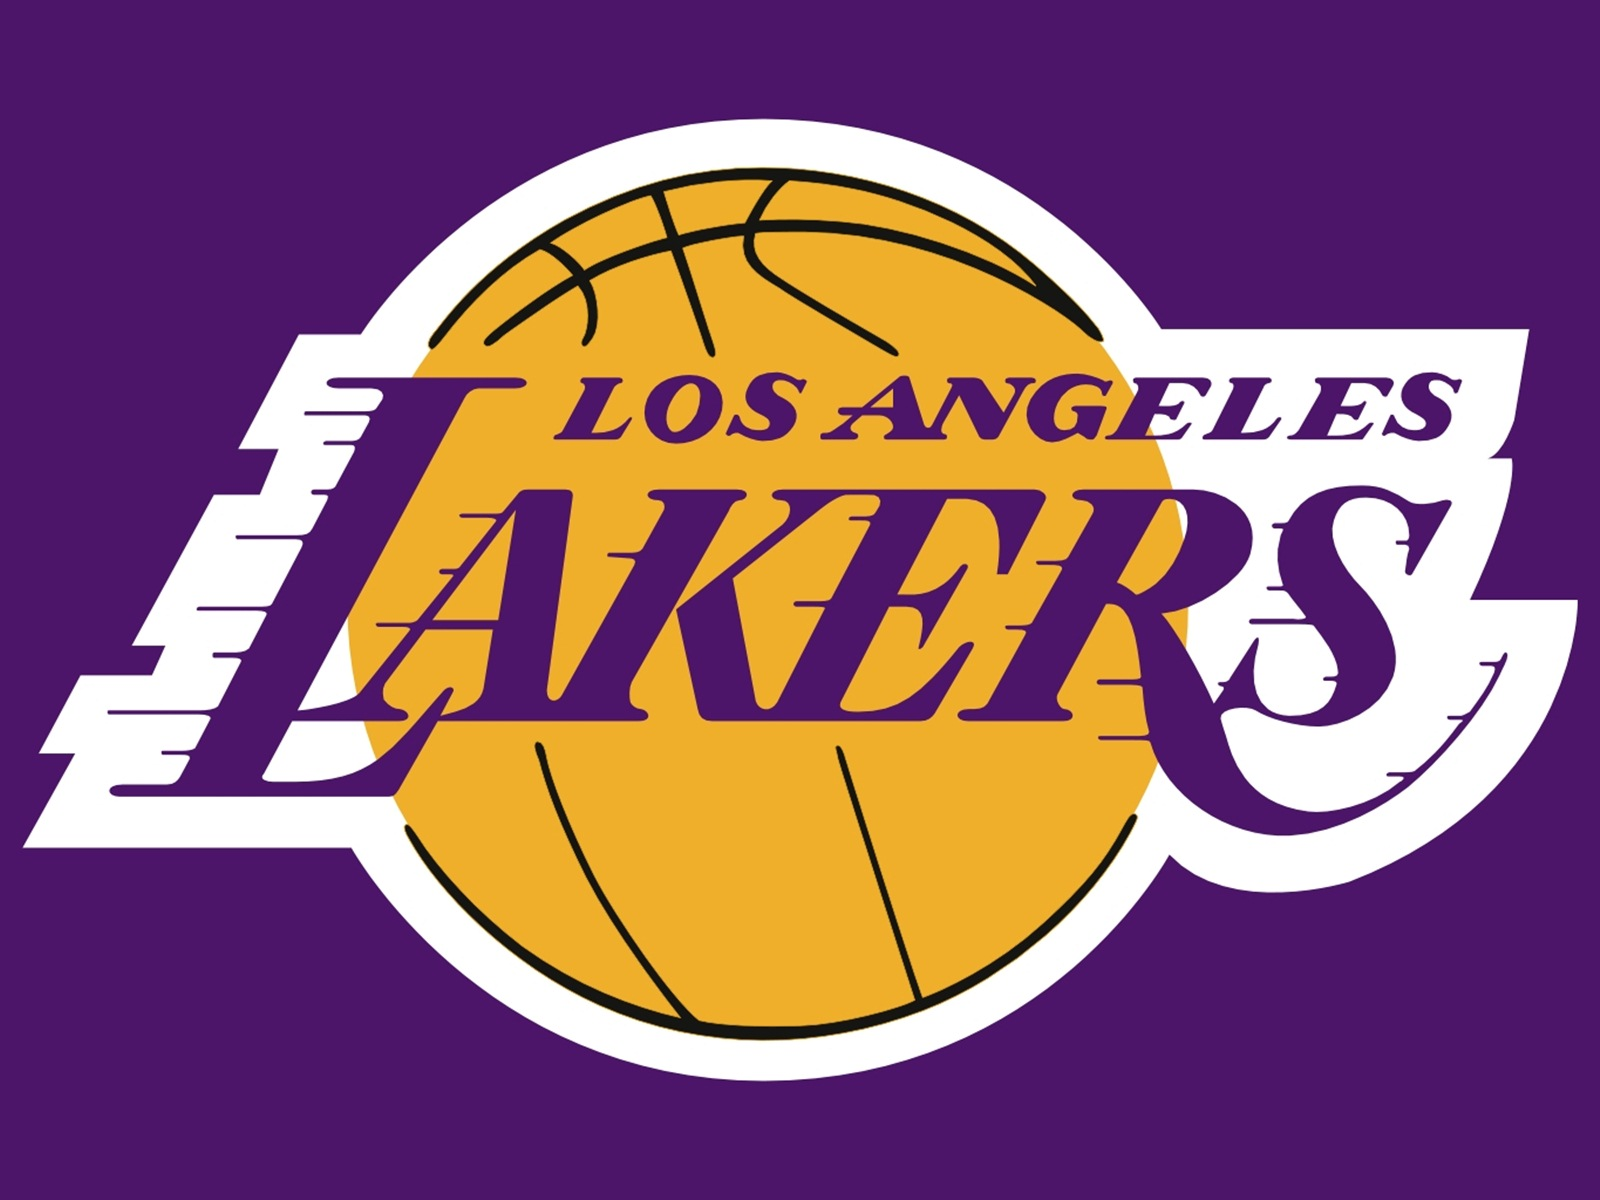 The Los Angeles Lakers logo without eyebrows : lakers.